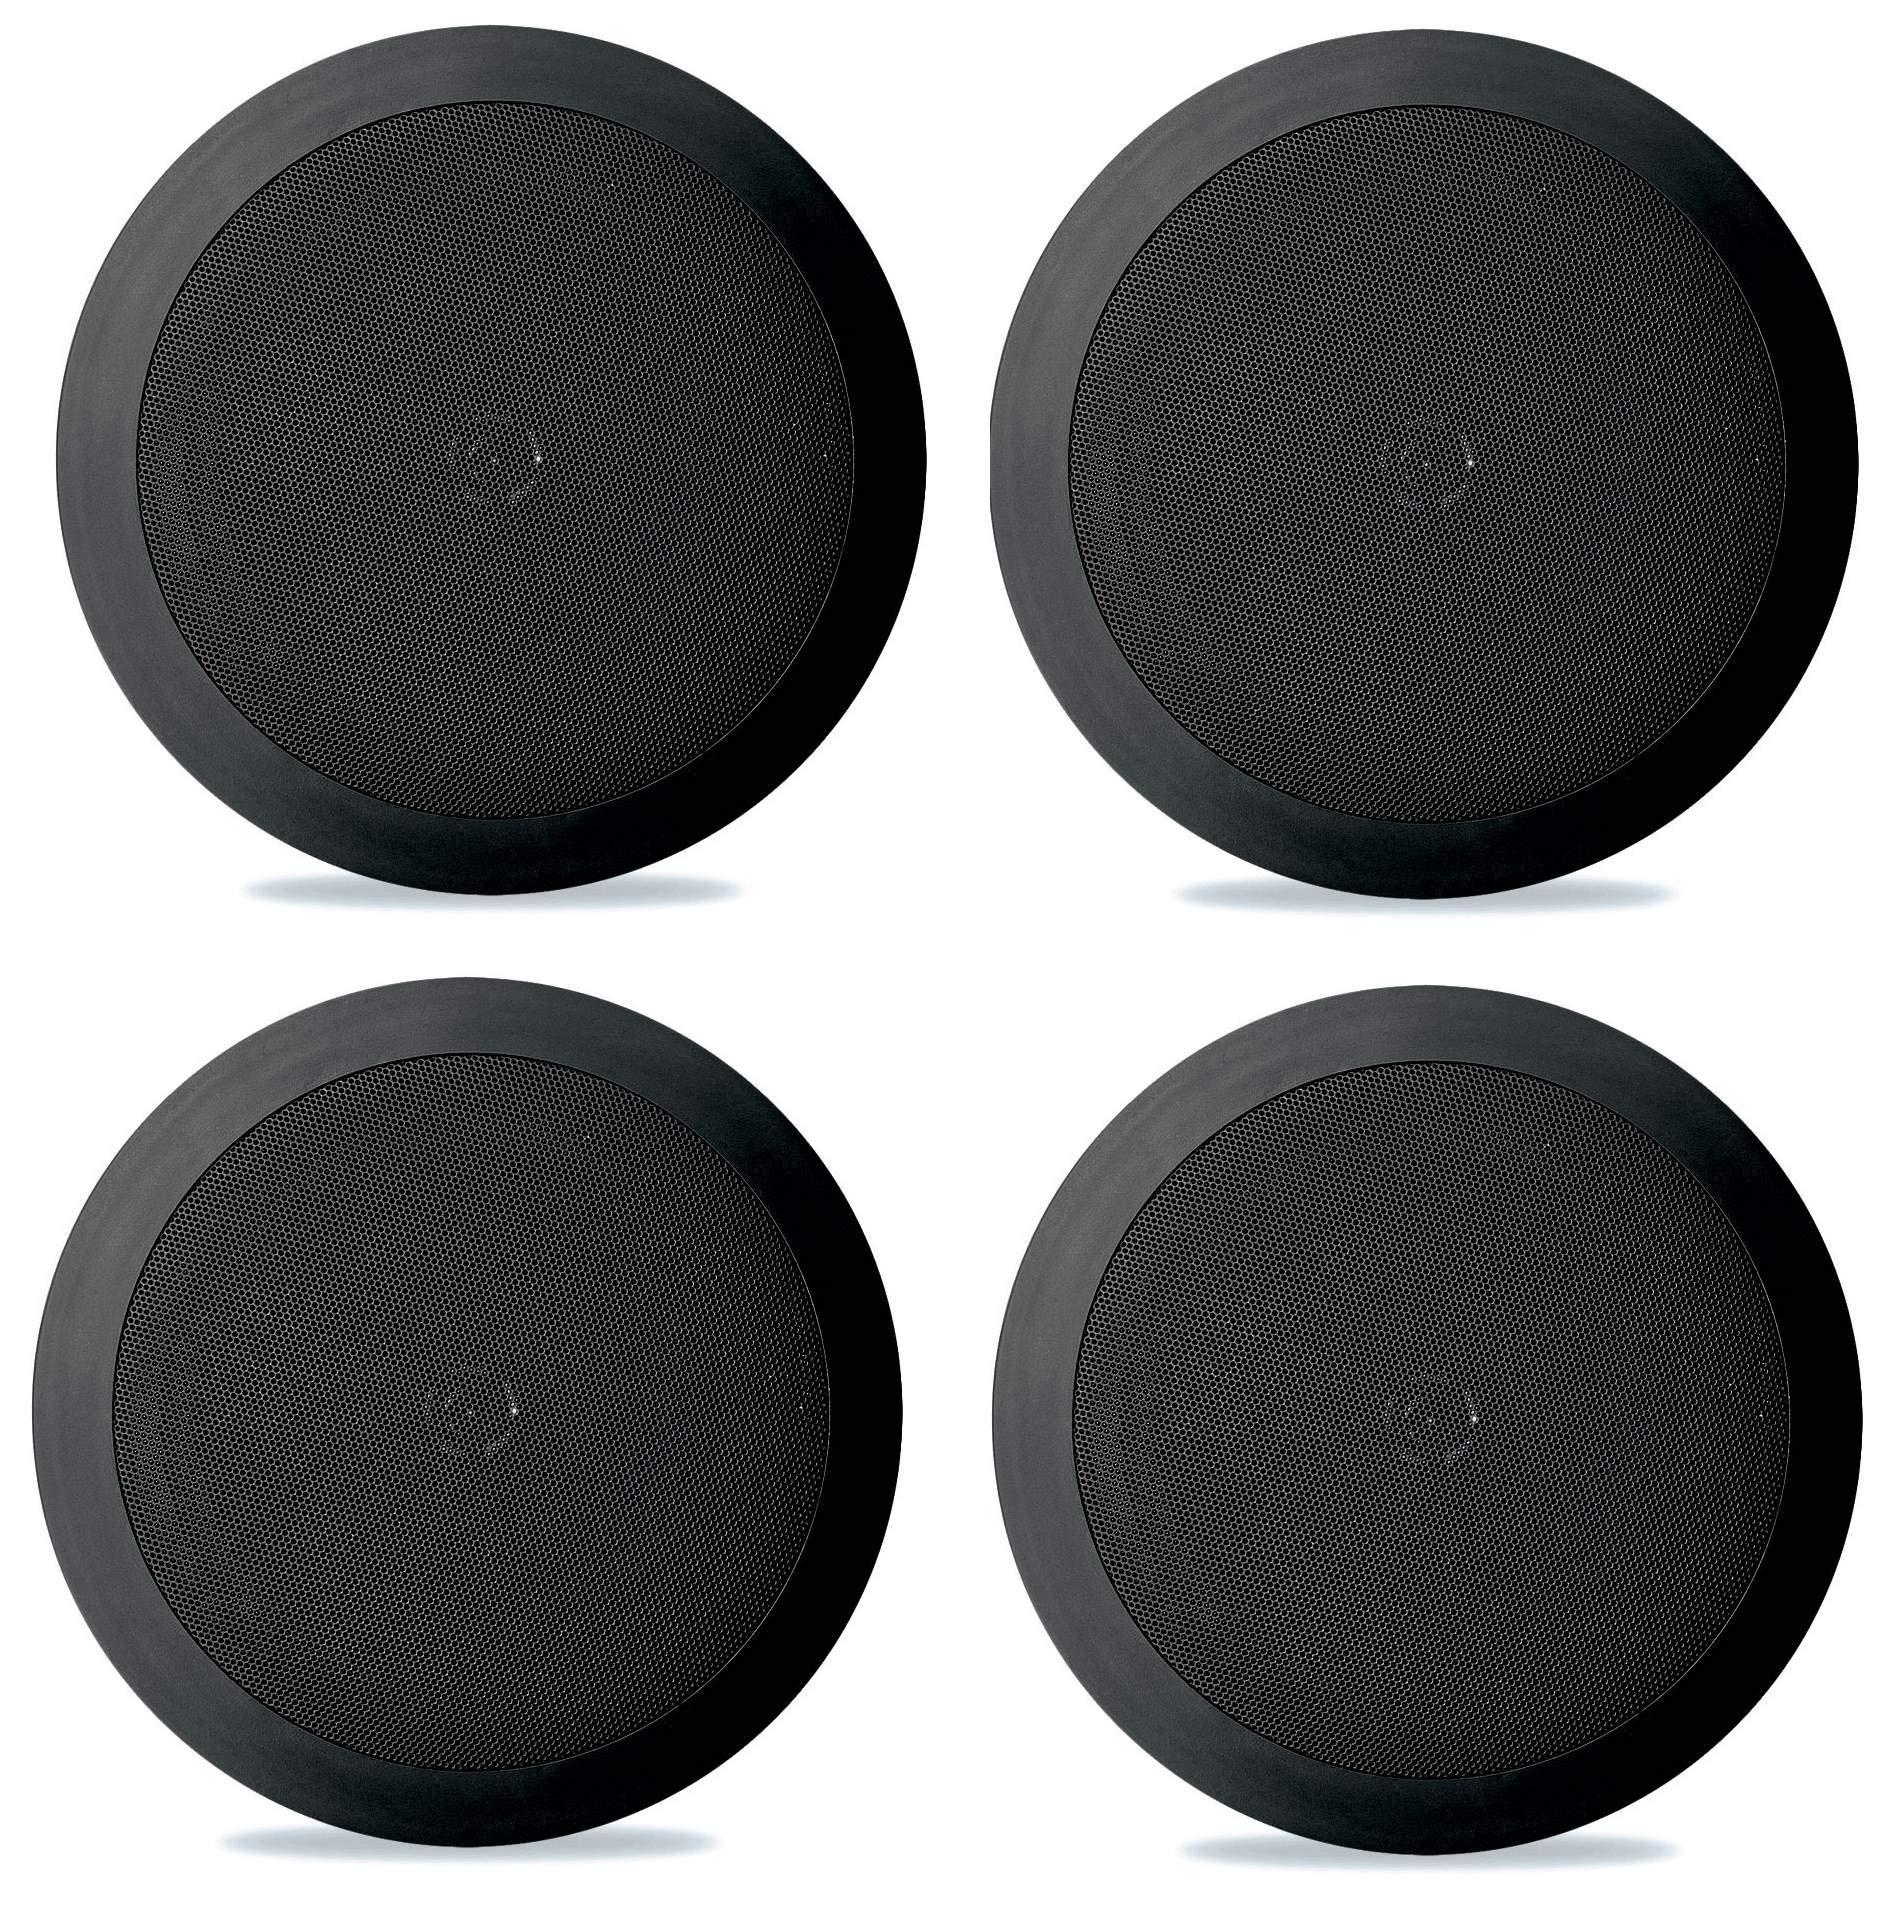 4) NEW Pyle PDIC51RDBK 5.25 Inch 150 Watt Black In-Ceiling Flush Speakers Four by Pyle